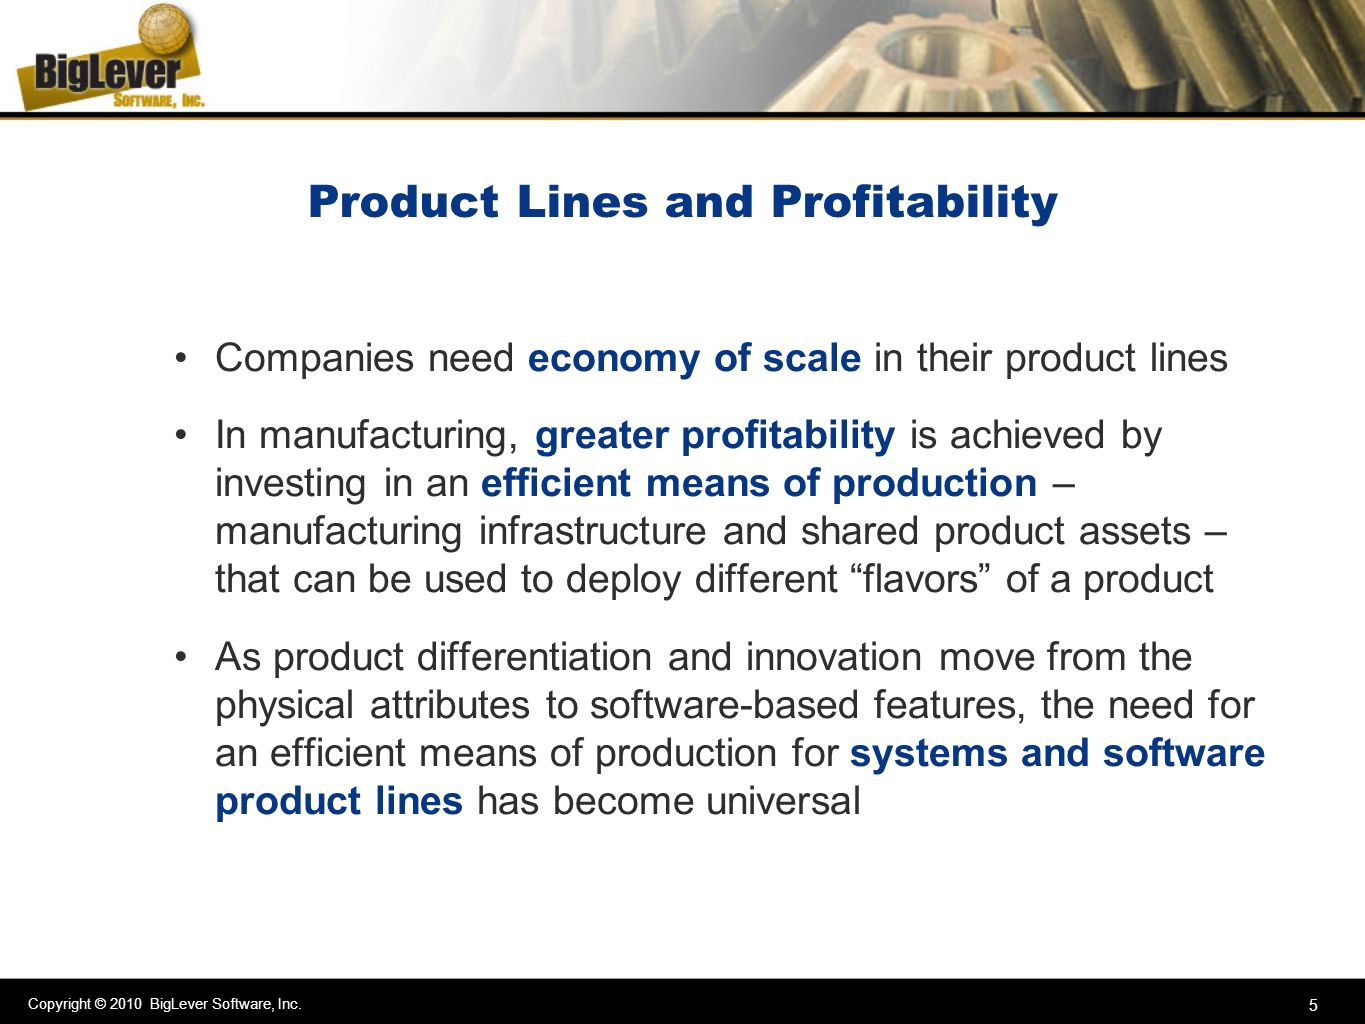 Product Lines and Profitability